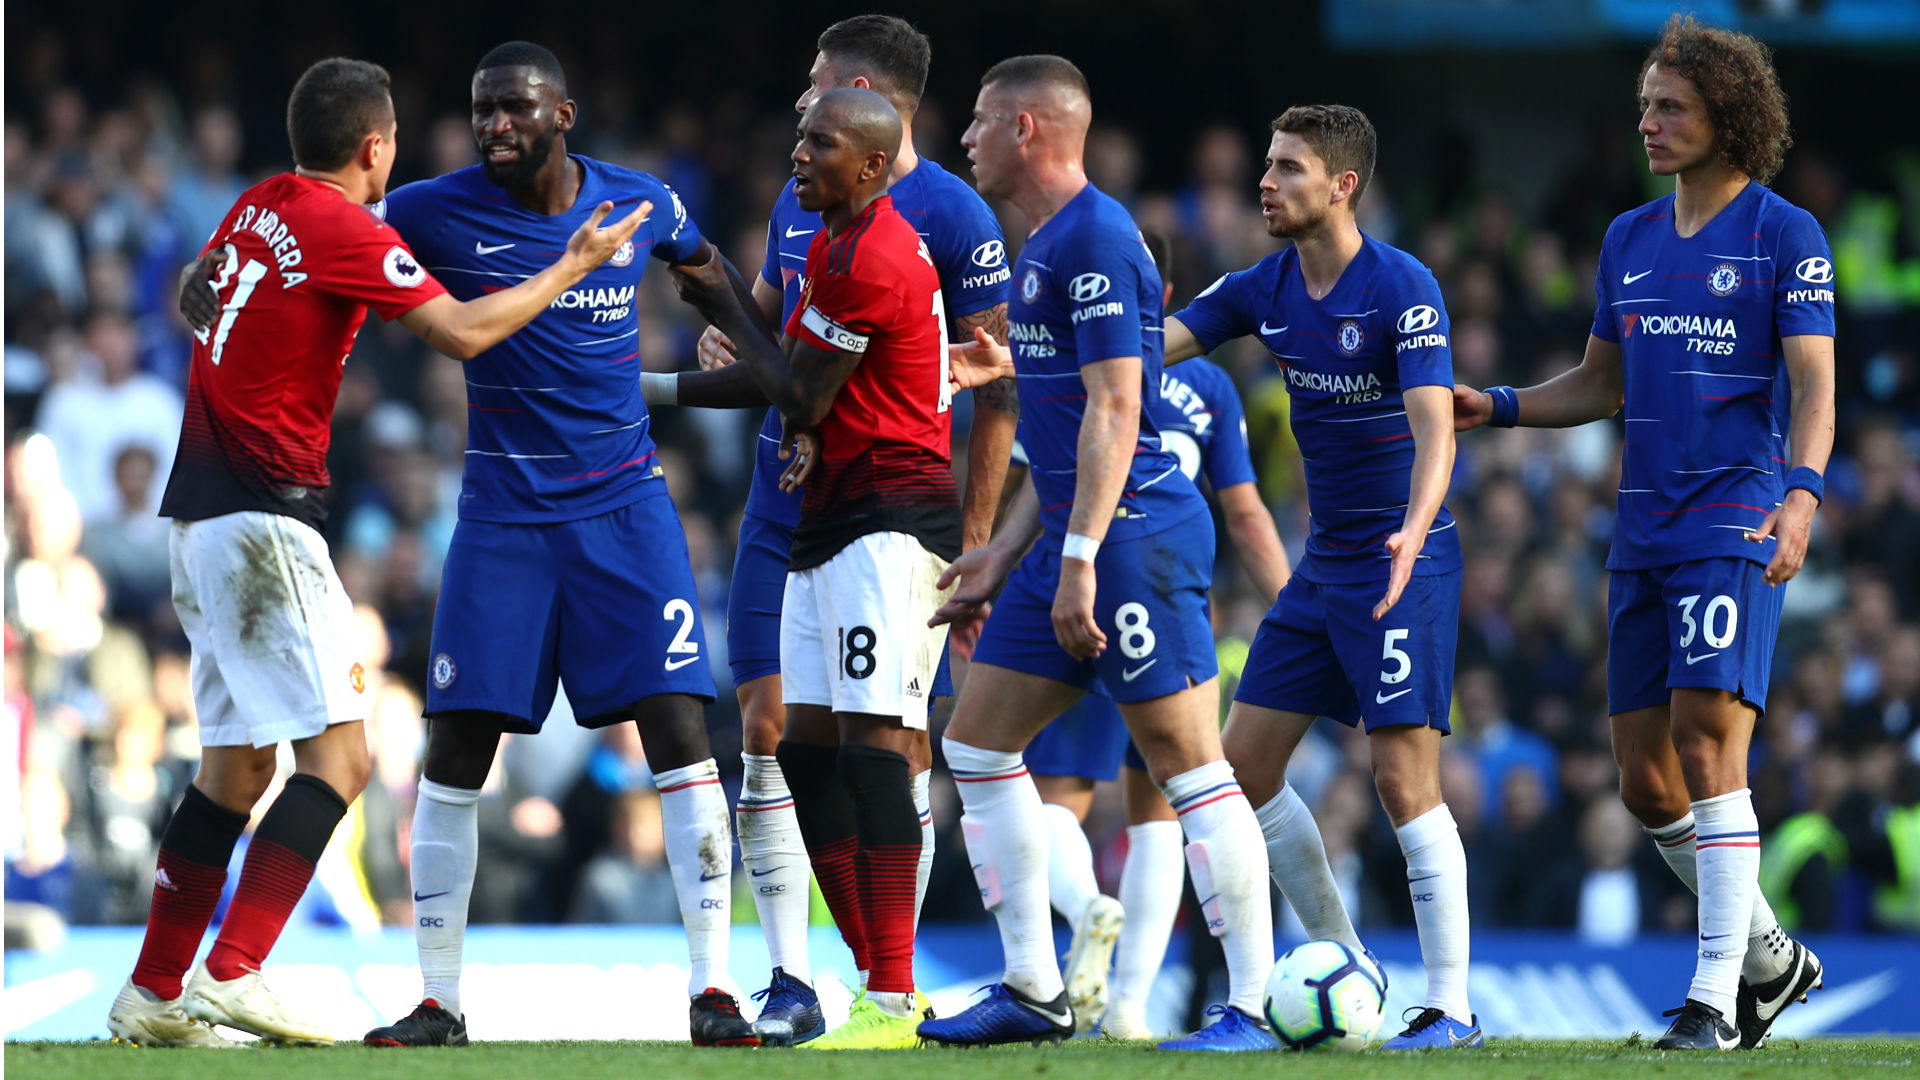 Twitter reacts as Manchester United concede late on at Stamford Bridge